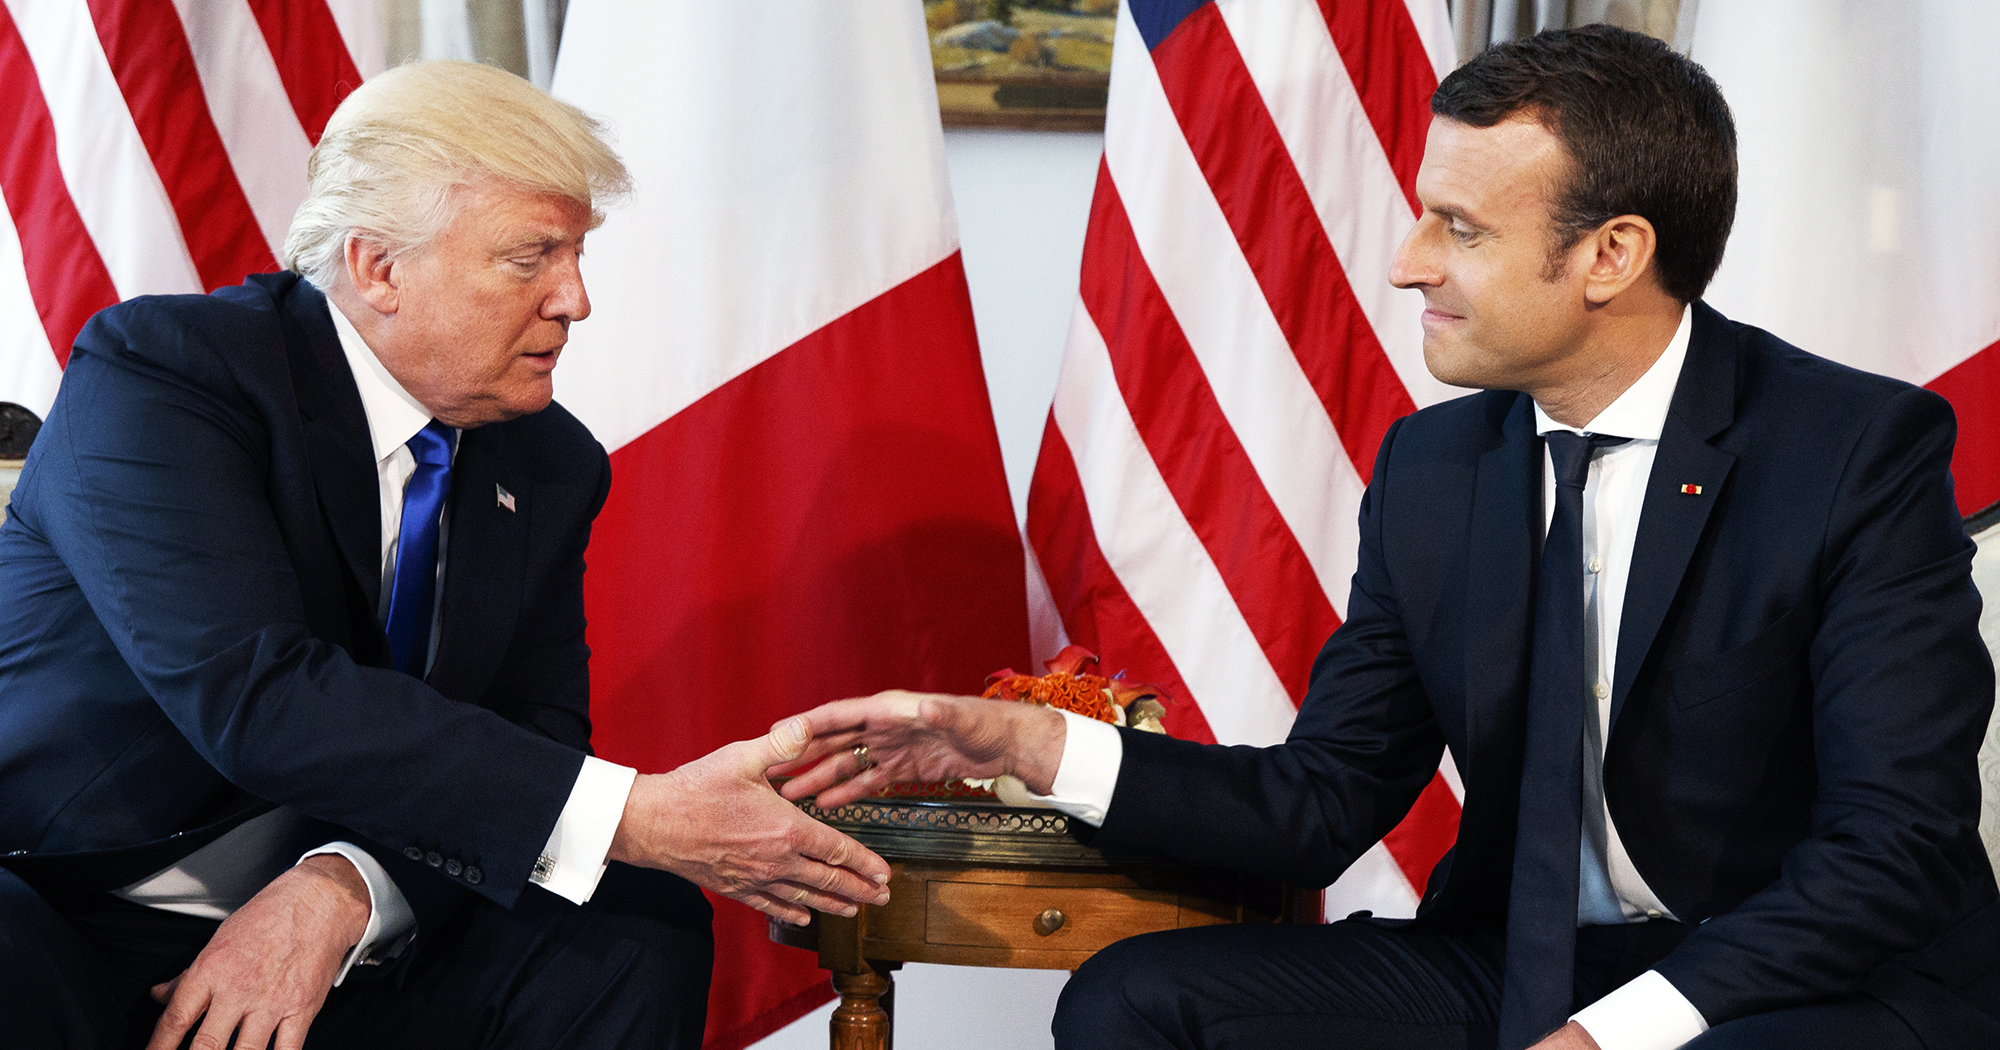 Donald Trump shakes hands with French President Emmanuel Macron during a meeting at the U.S. Embassy, on May 25, 2017, in Brussels.